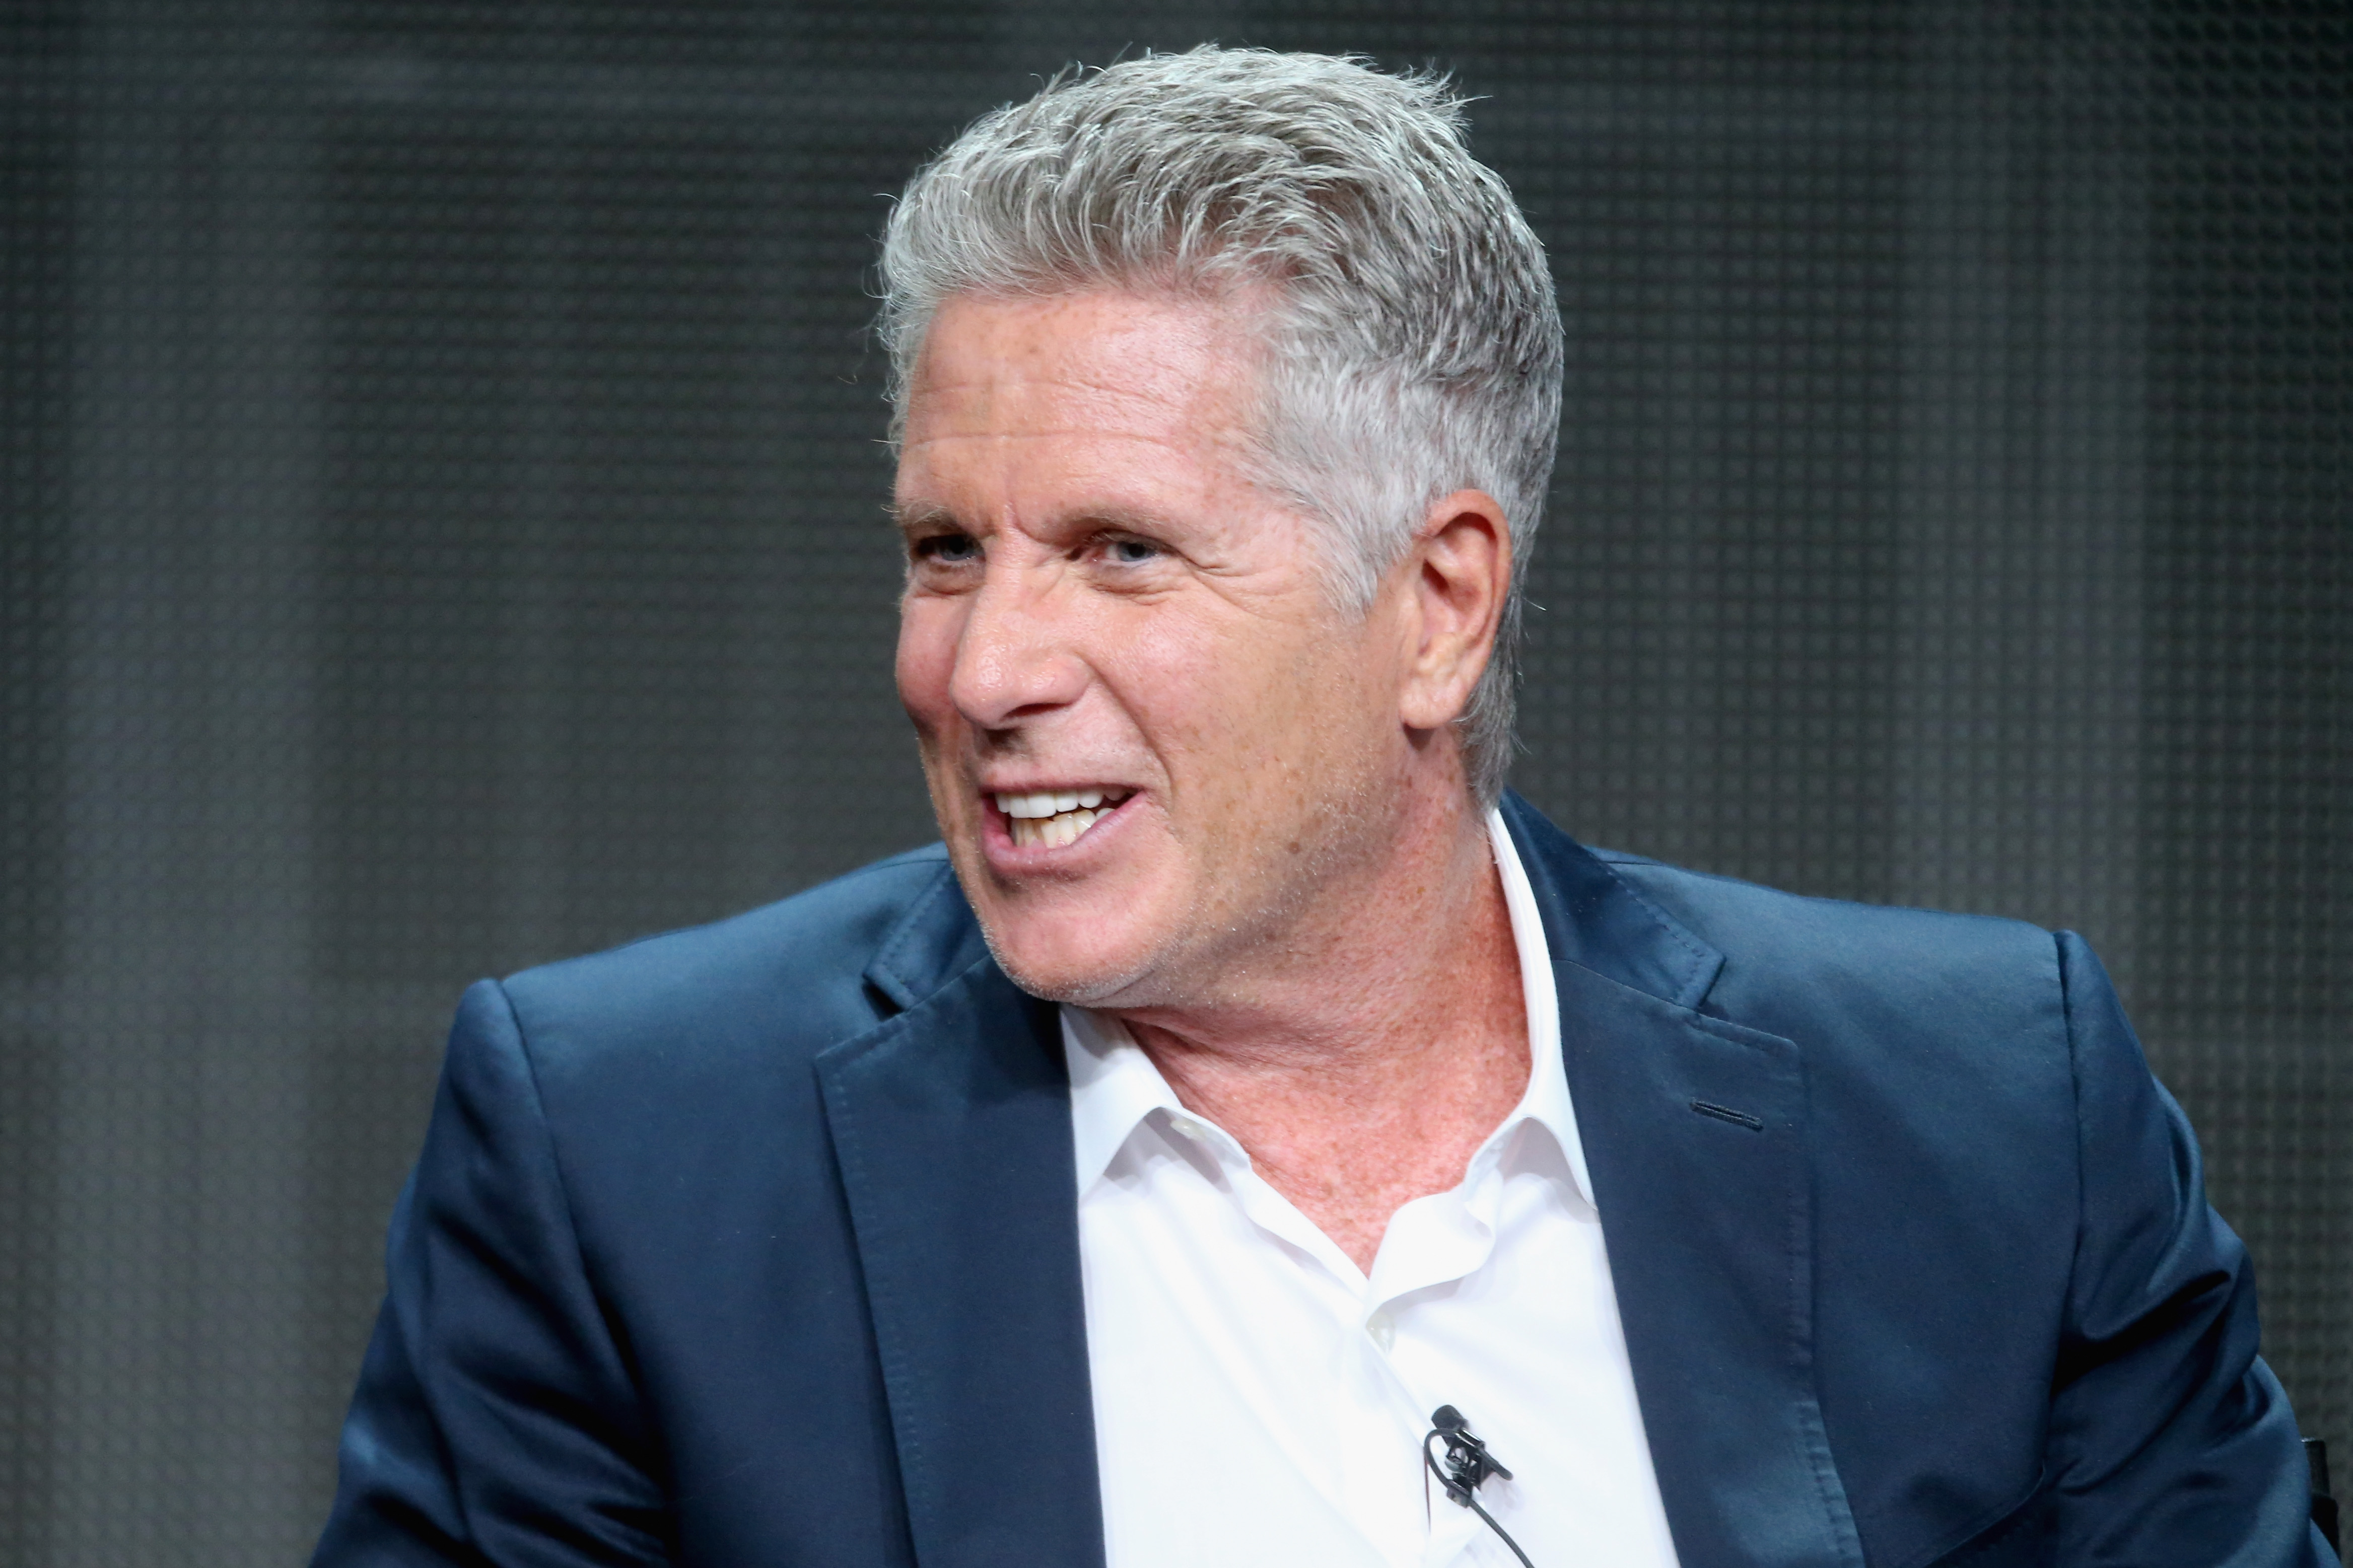 TV personality Donny Deutsch speaks onstage during the USA Networks' 'donny!' panel discussion at the NBCUniversal portion of the 2015 Summer TCA Tour at The Beverly Hilton Hotel on August 12, 2015 in Beverly Hills, California. (Frederick M. Brown/Getty Images)